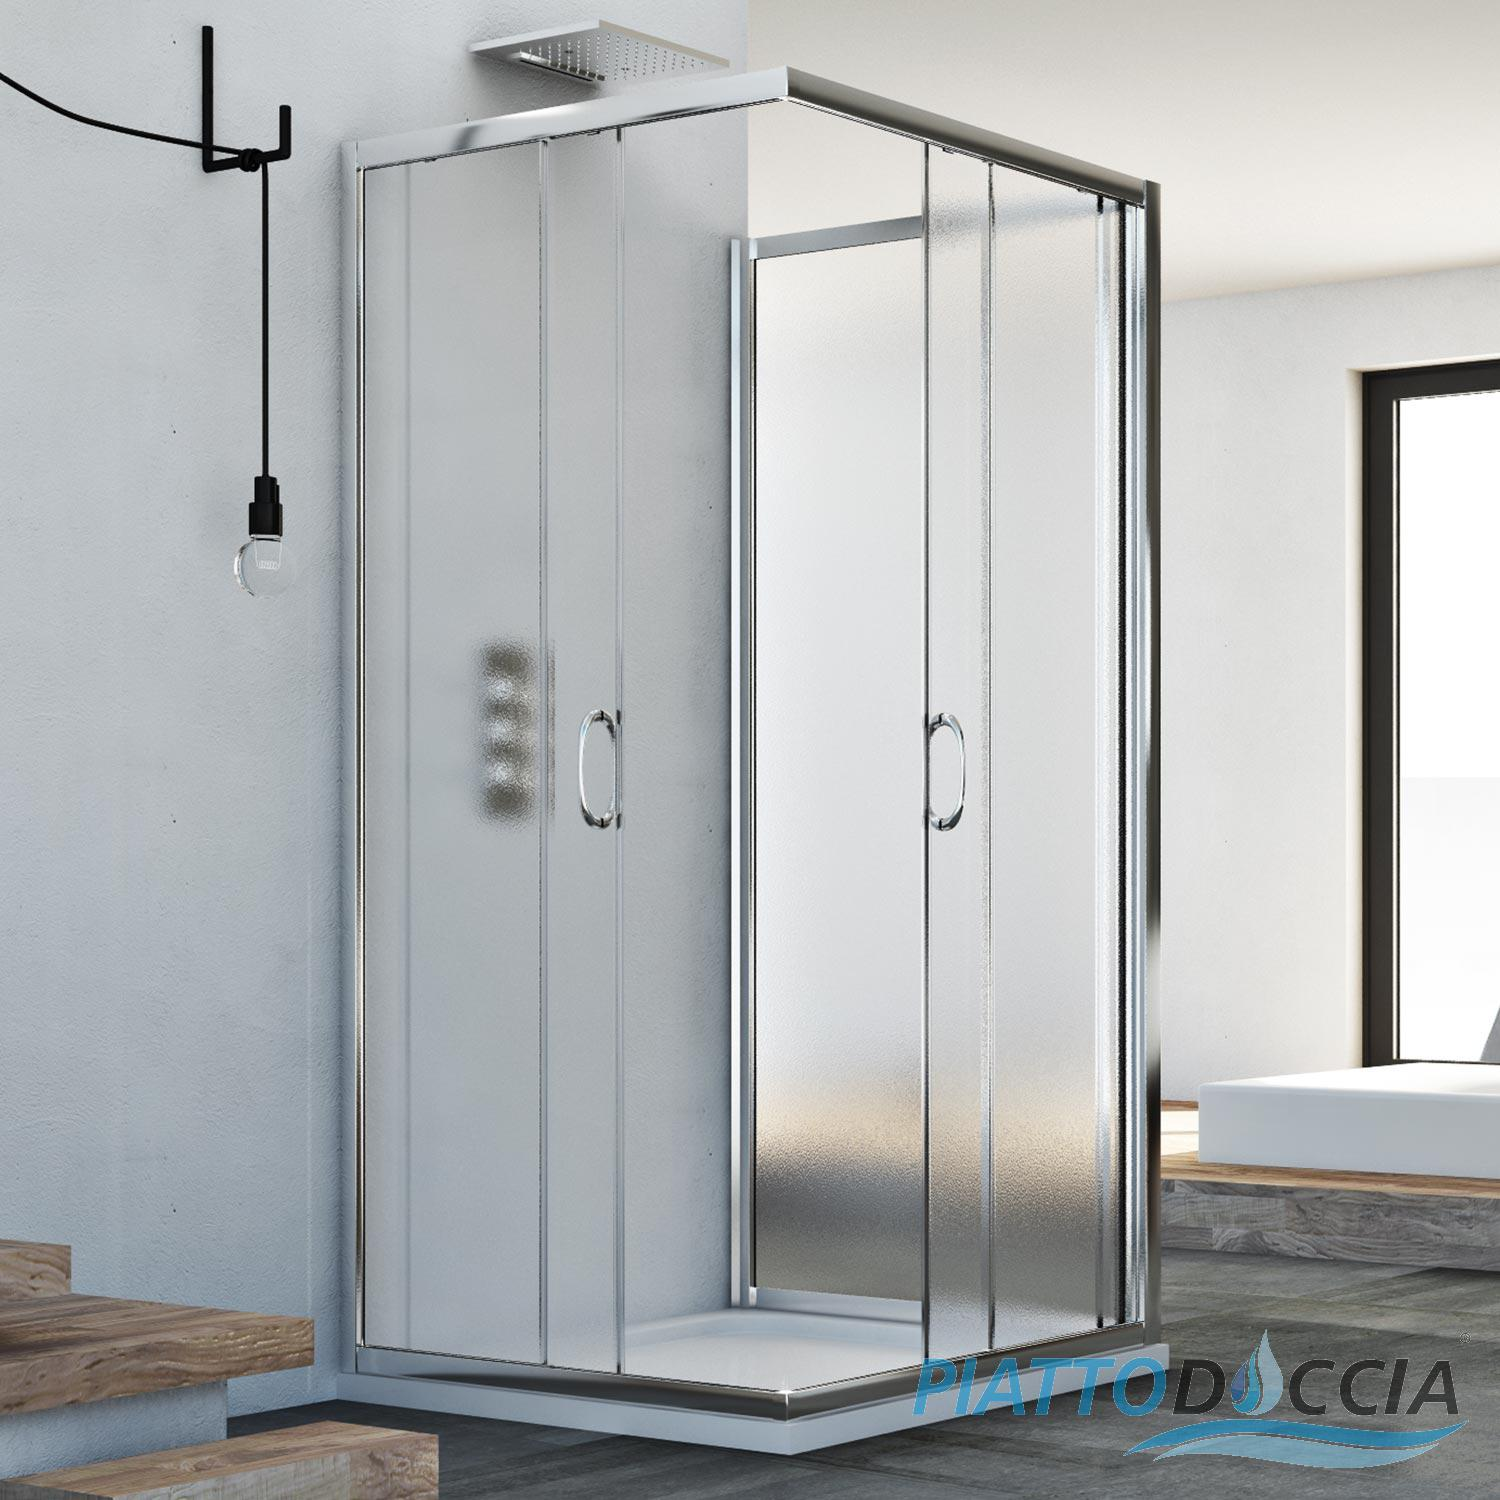 3-SIDED SHOWER CUBICLE ENCLOSURE 700X700X700 MM STIPPLED GLASS ...